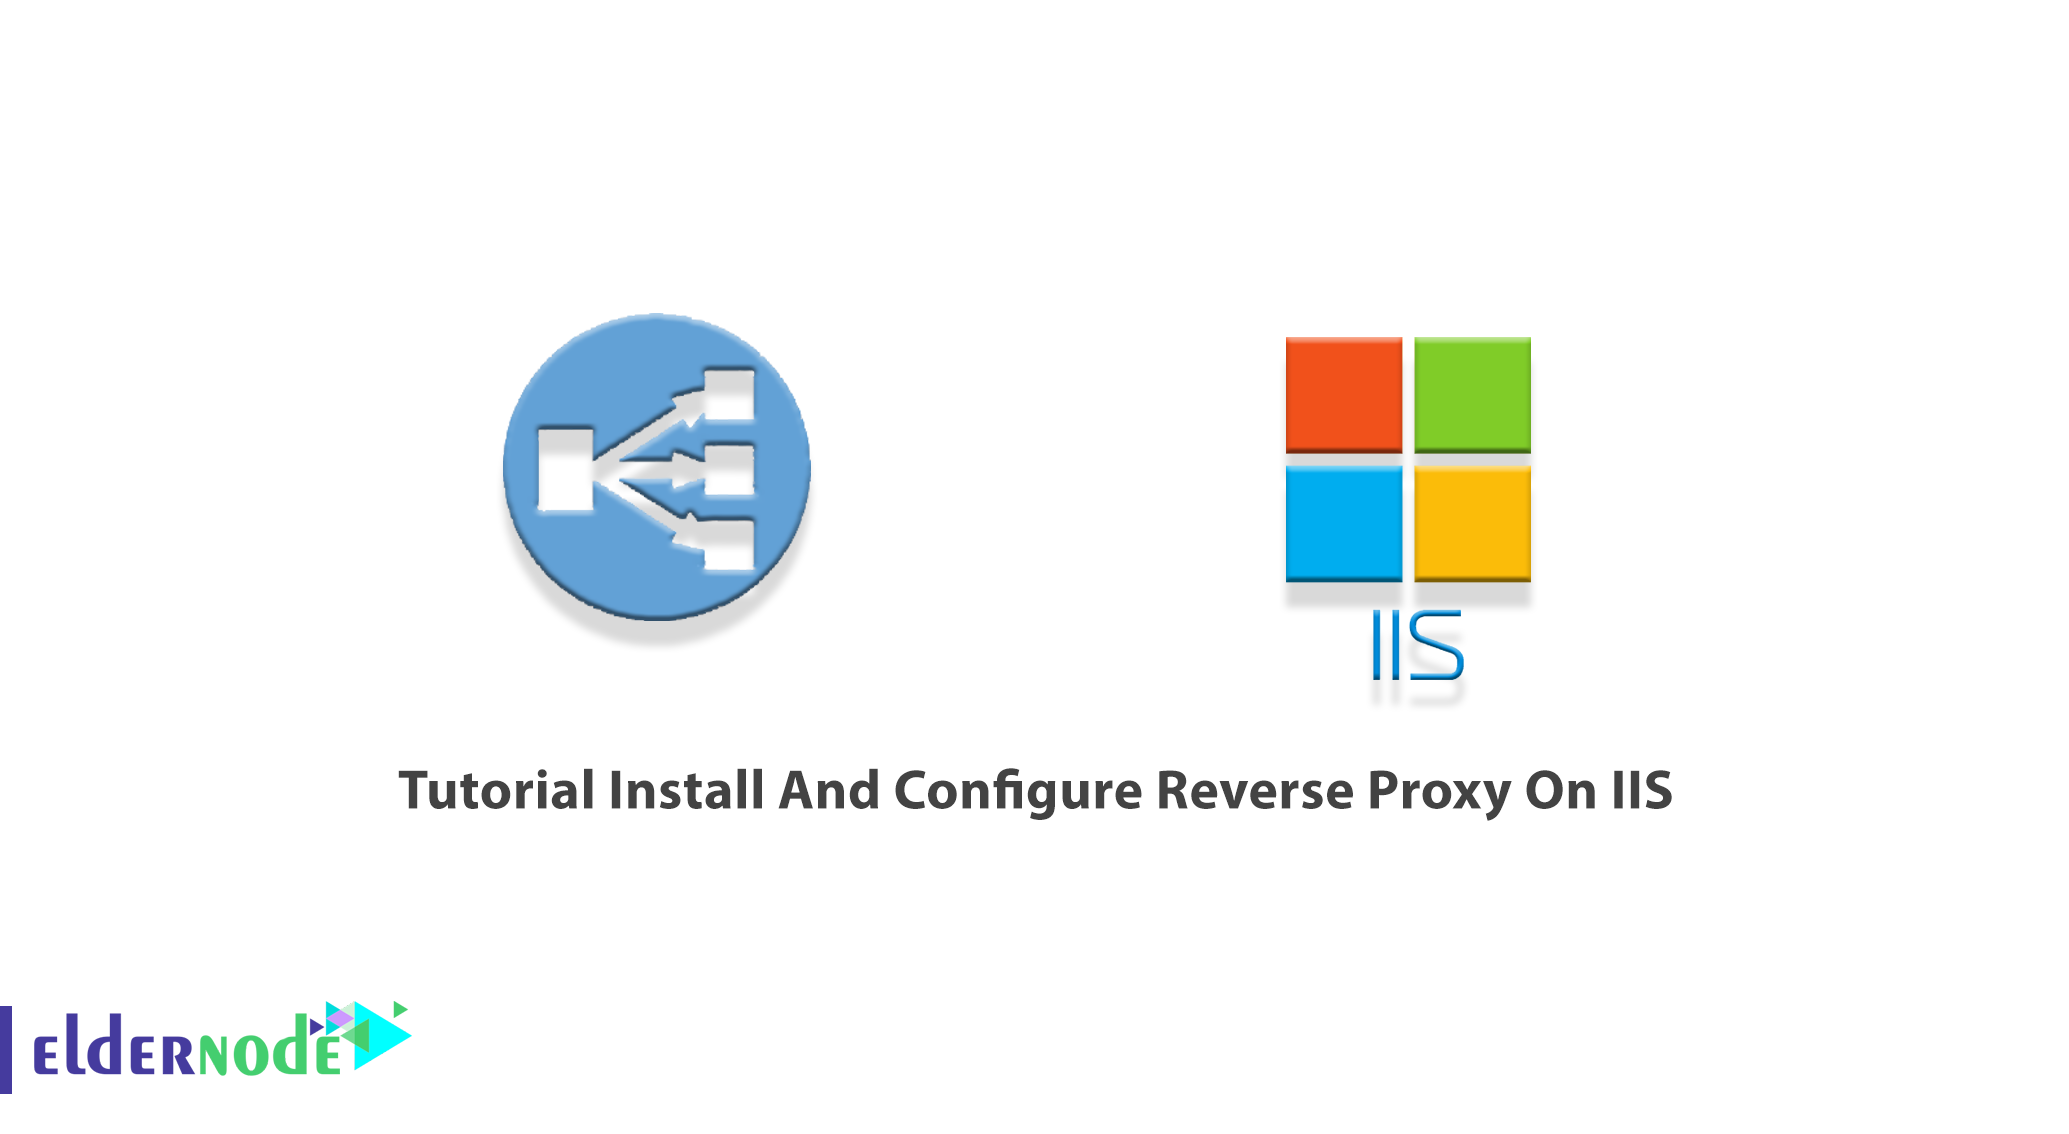 Tutorial Install And Configure Reverse Proxy On IIS